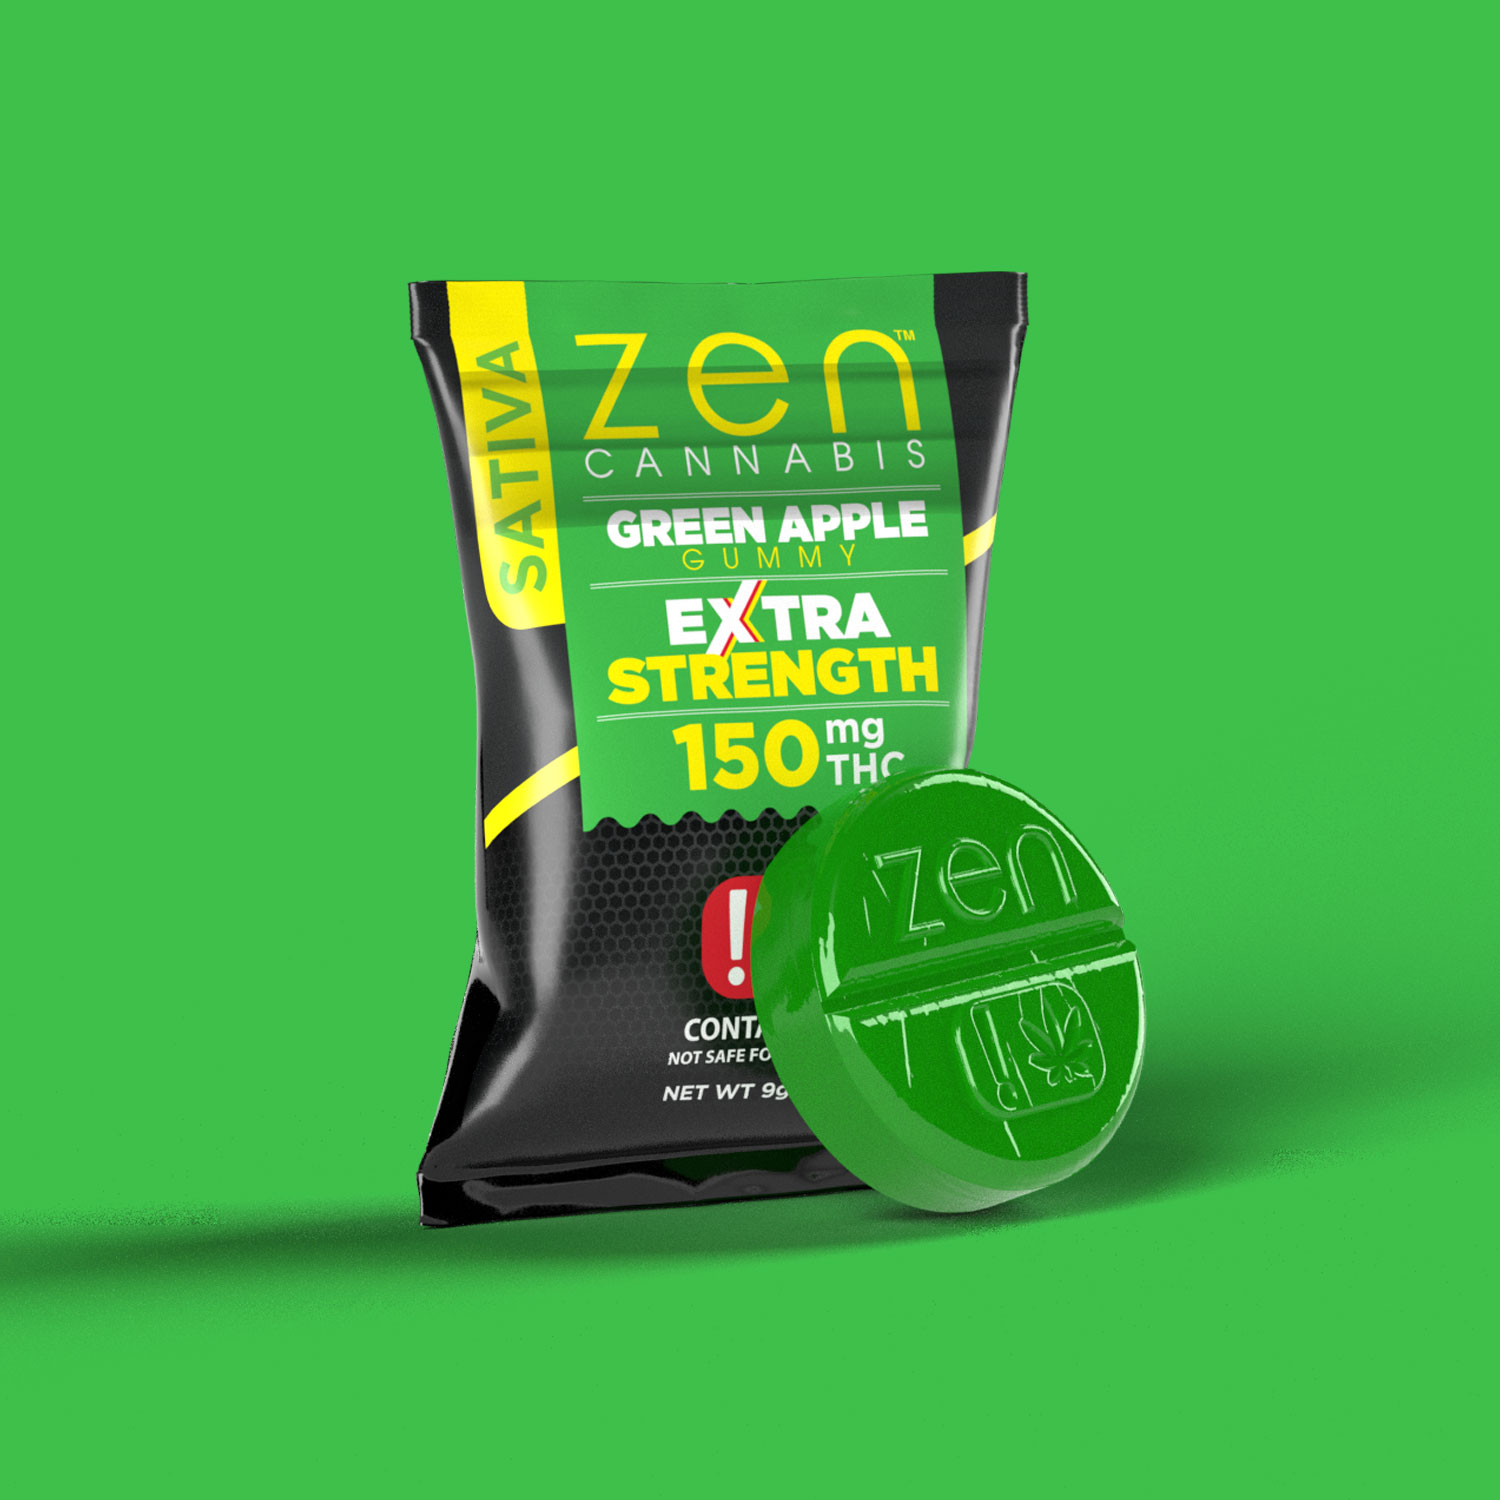 EXTRA STRENGTH  SATIVA    150mg THC  A mouthwatering tart green apple flavor that is overflowing with flavor. Gluten & fat-free